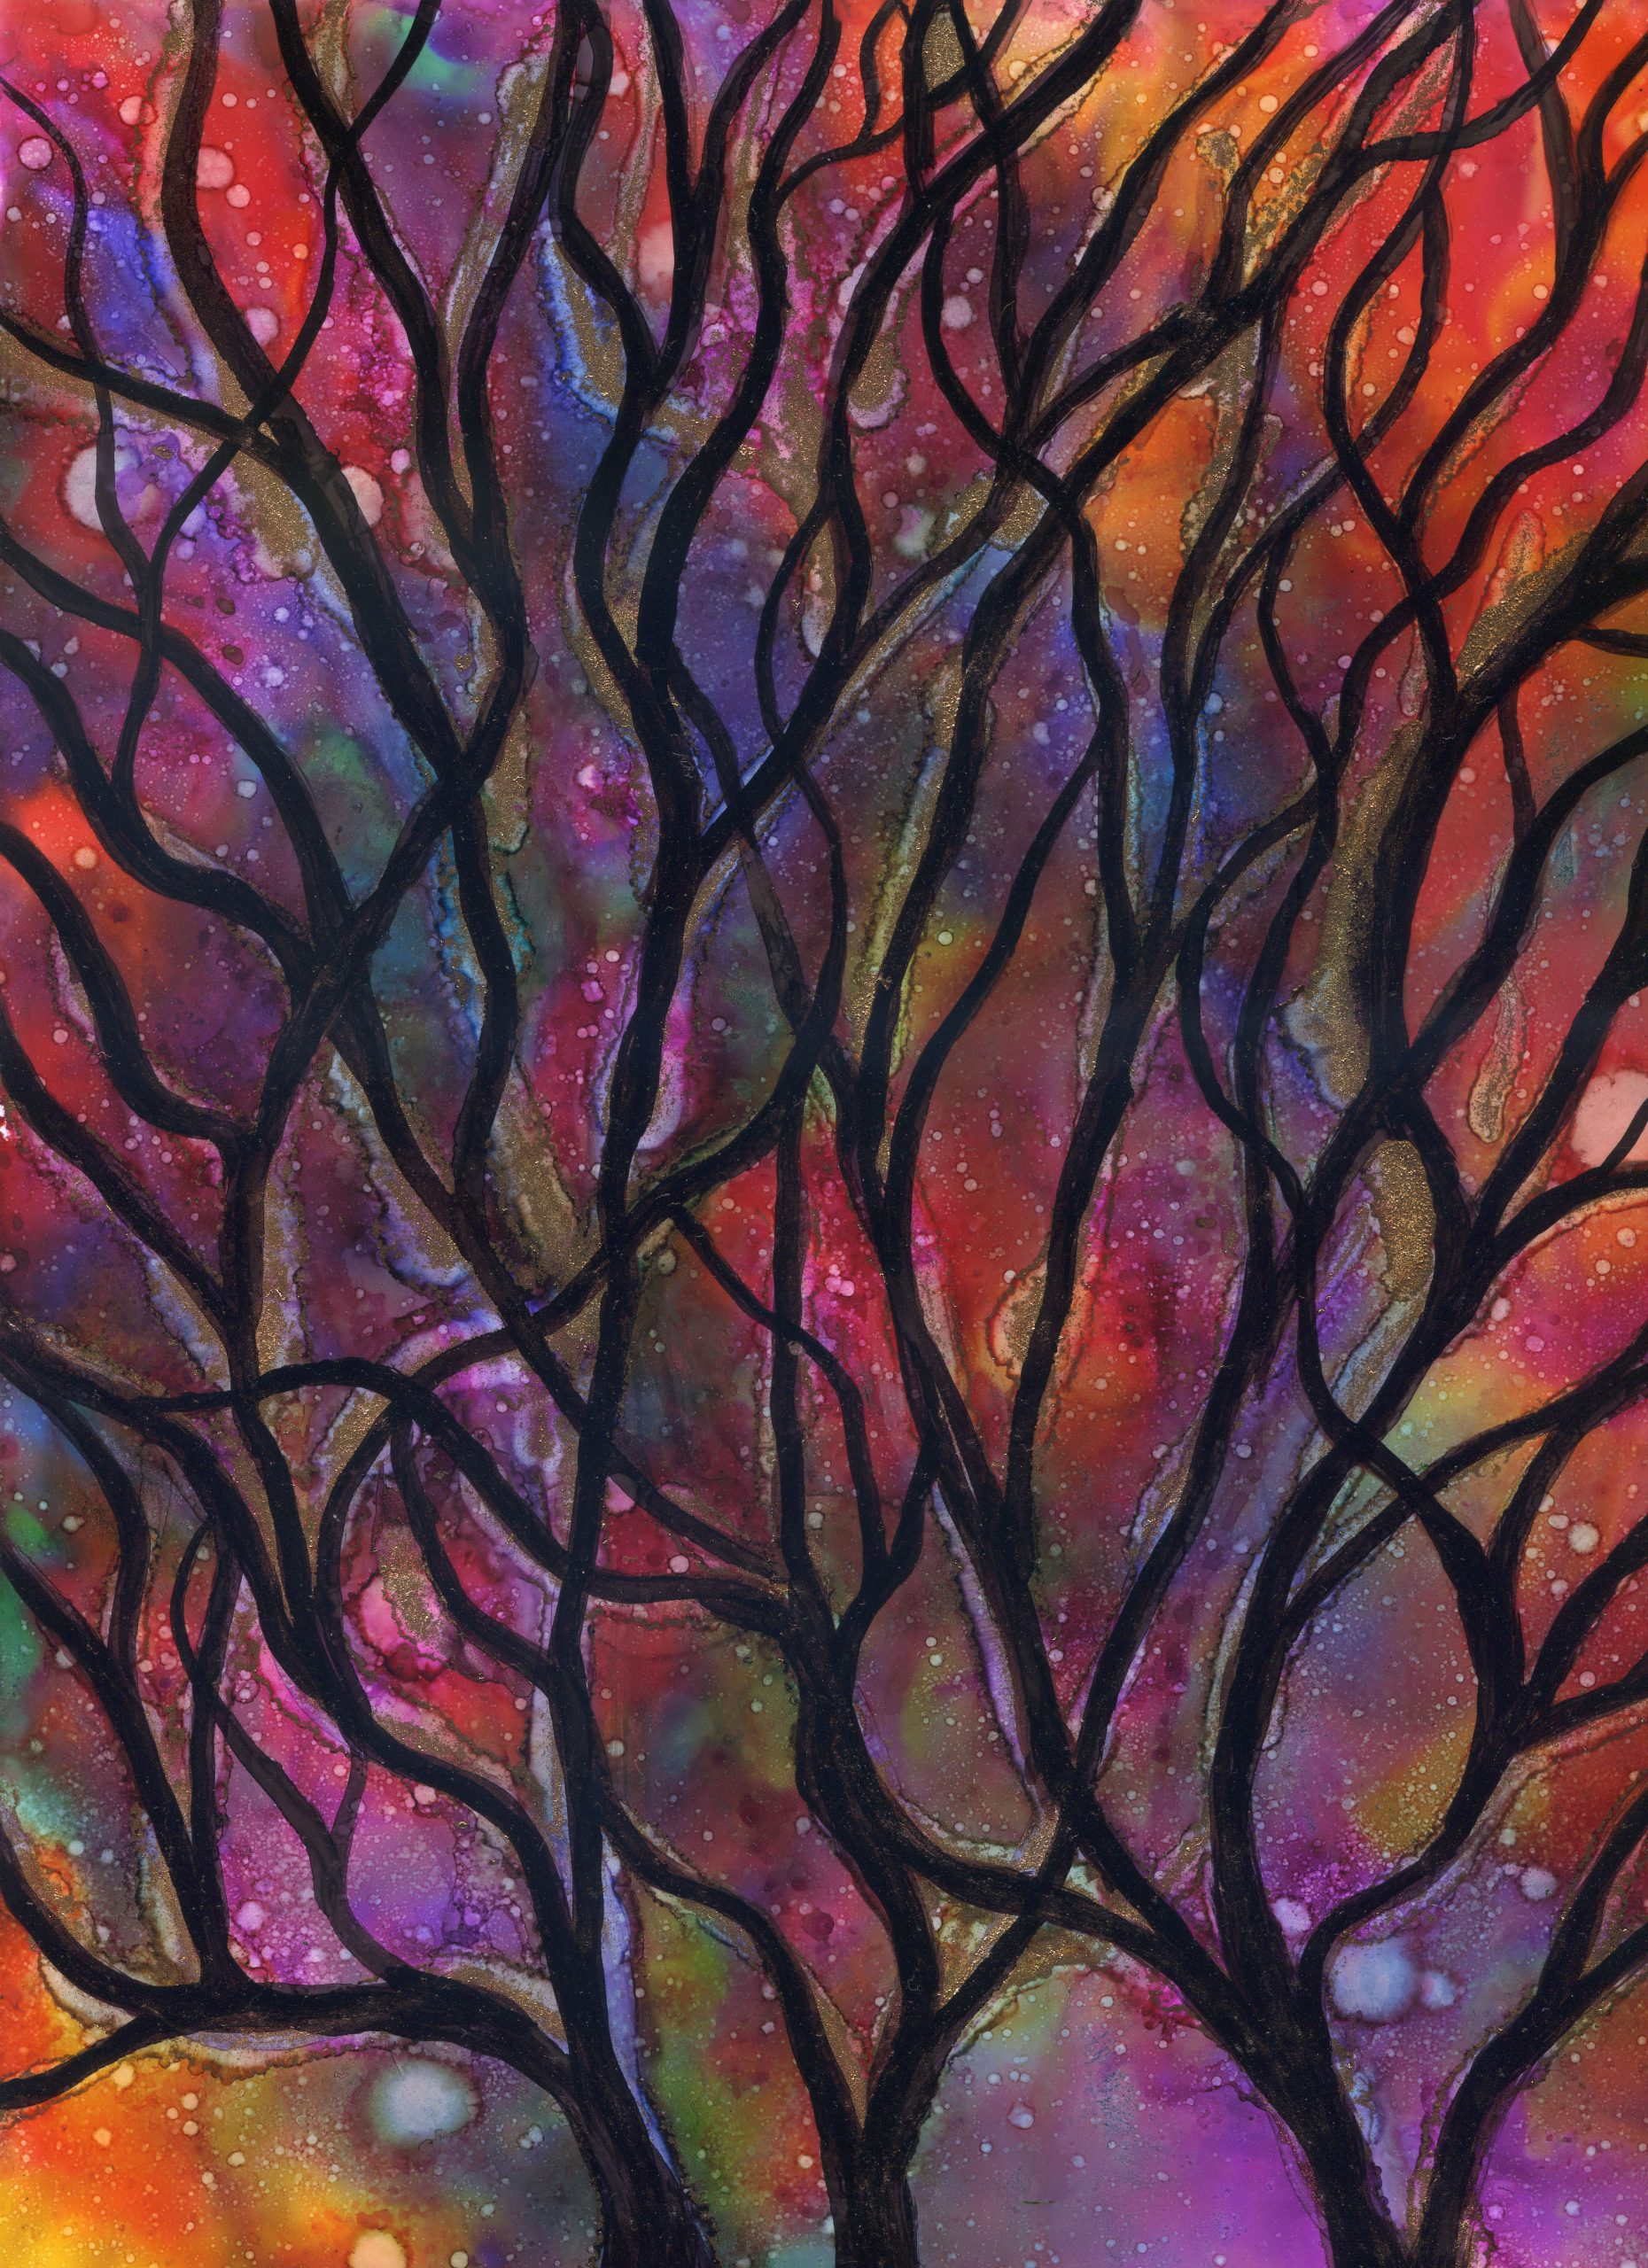 Branches in Silhouette - Alcohol Ink-9 X 12 - $150